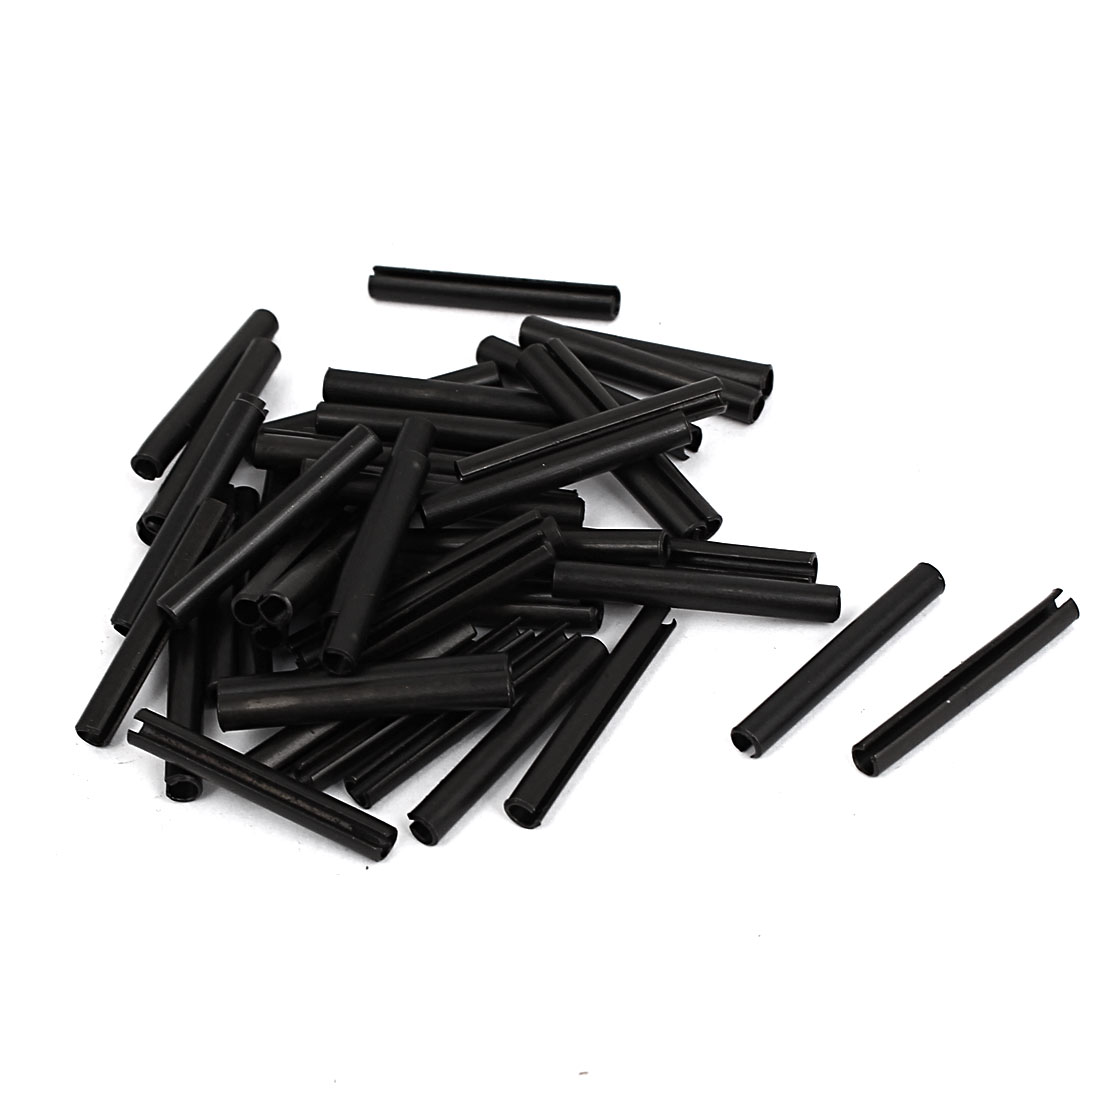 M3x25mm Carbon Steel Split Spring Dowel Pin Cotter Pins Hardware 50pcs